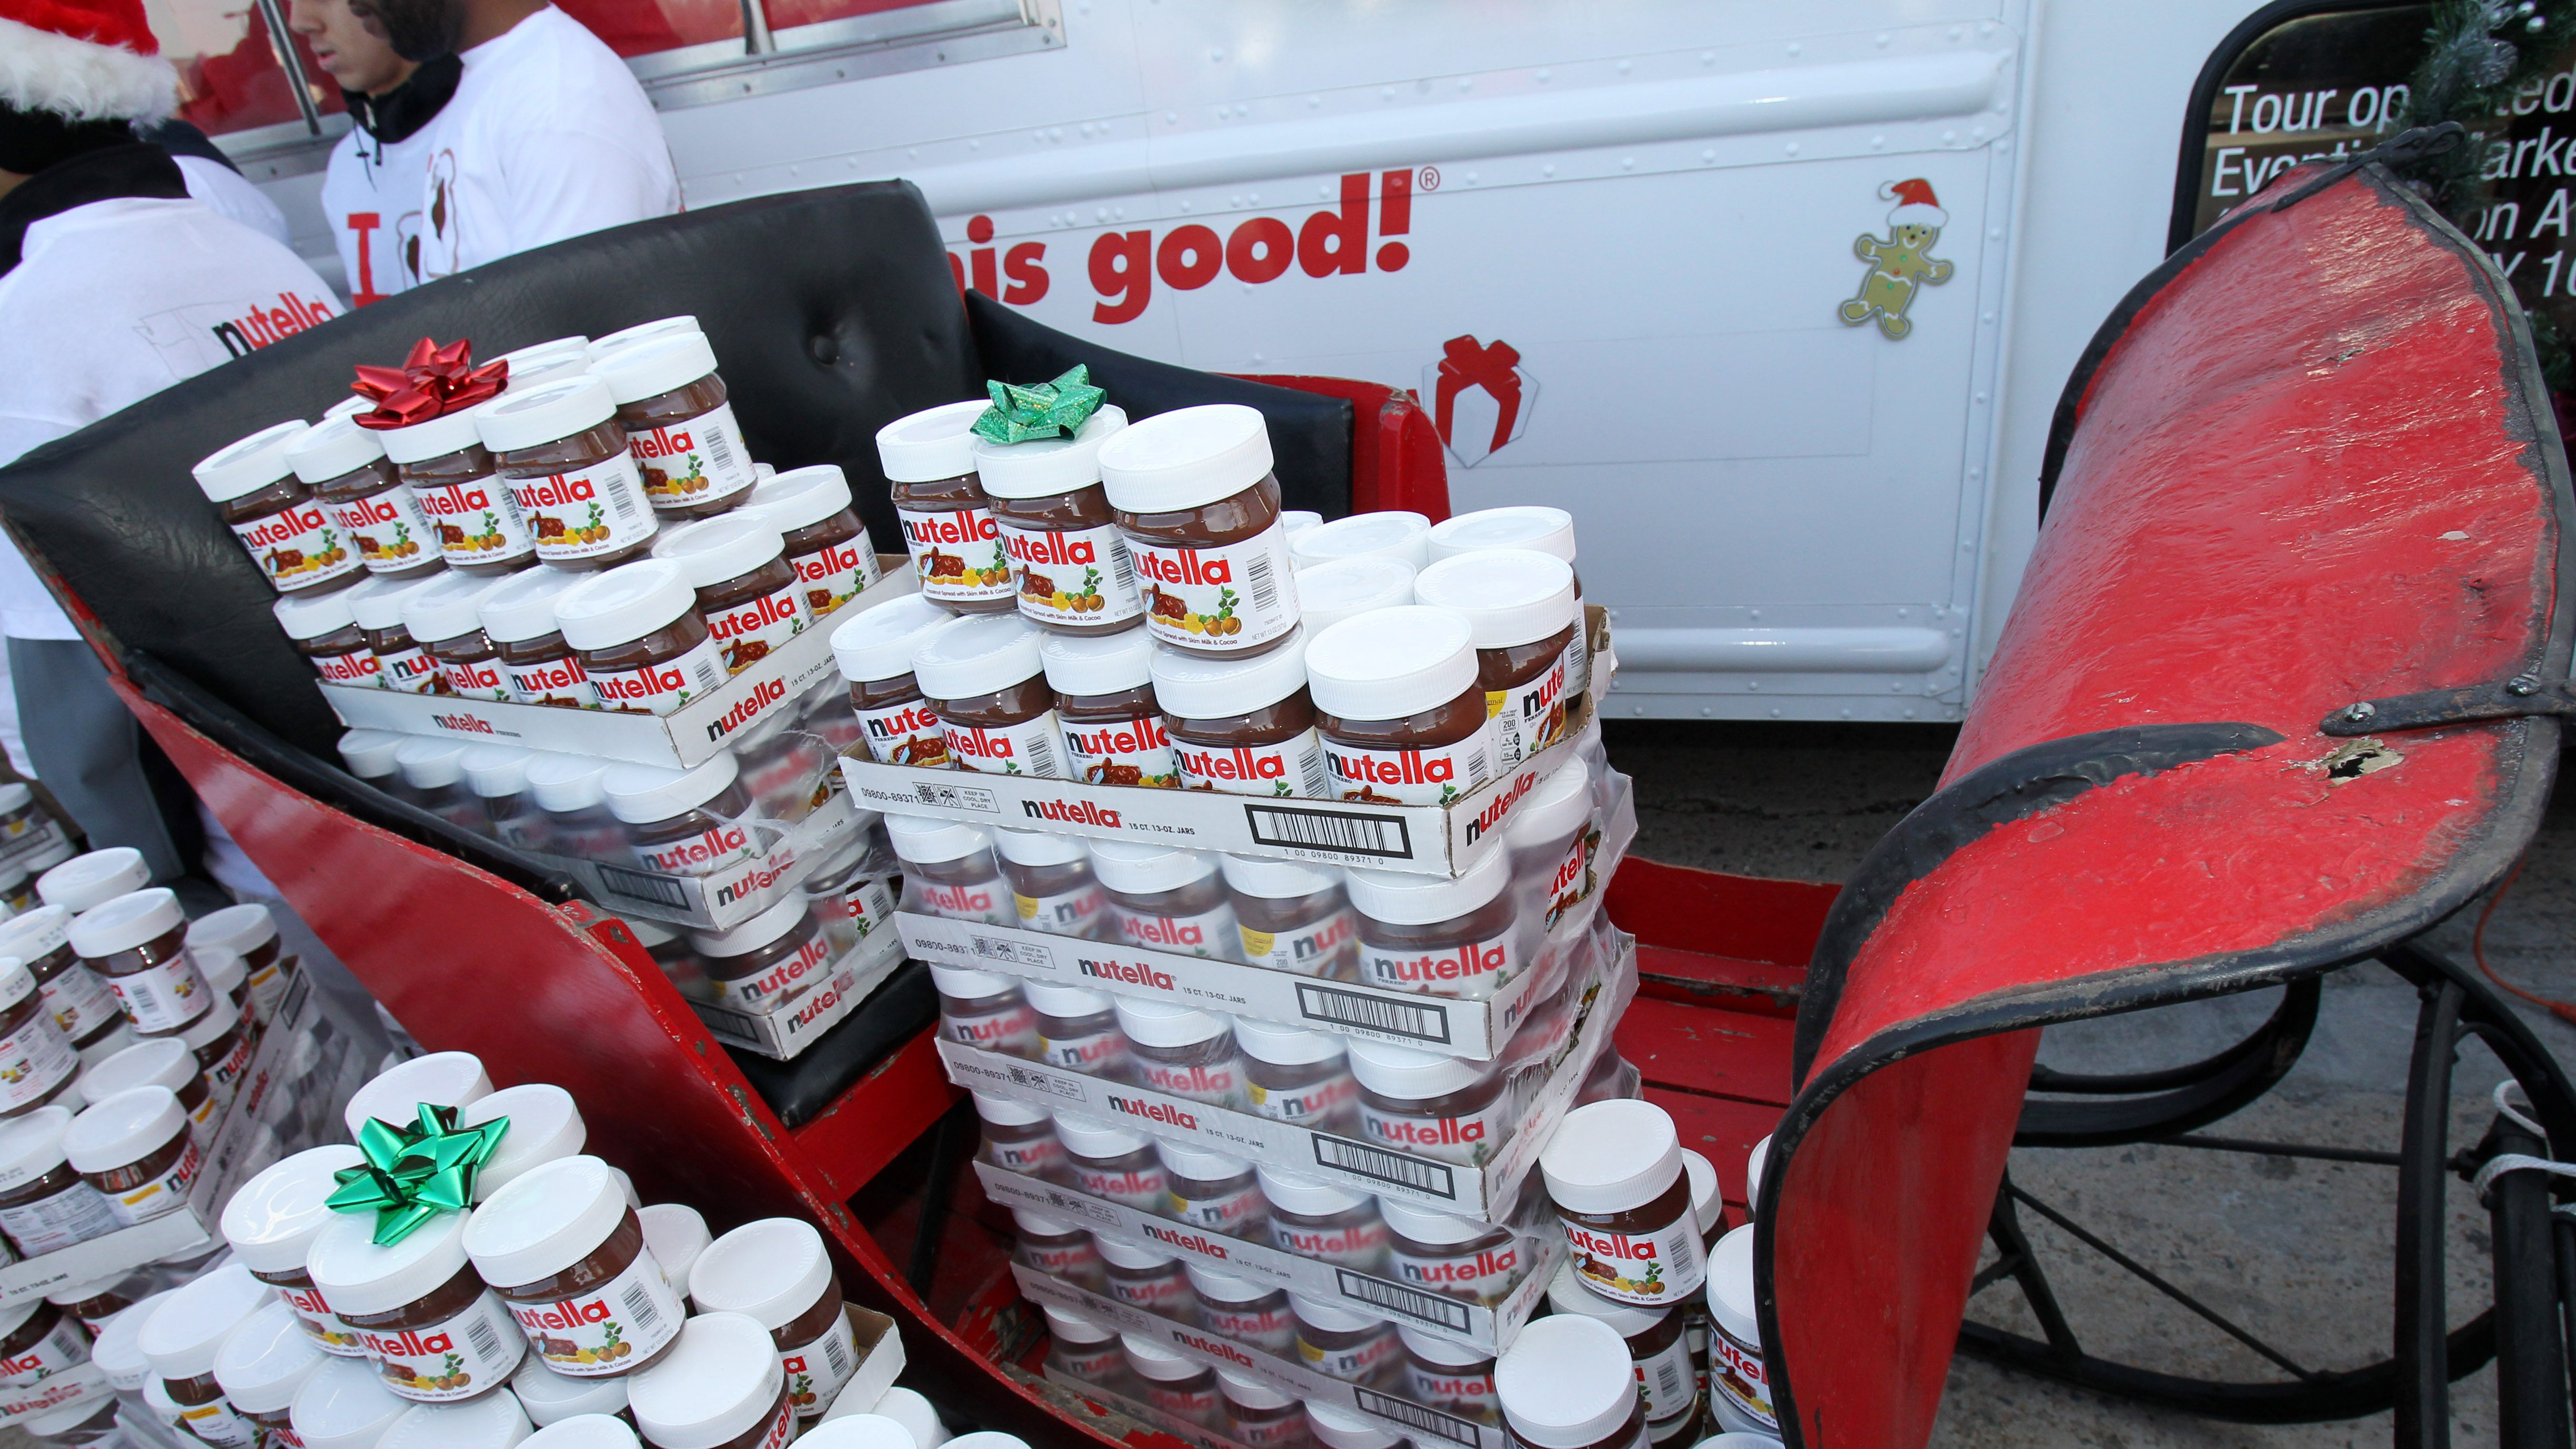 IMAGE DISTRIBUTED FOR NUTELLA -Nutella hands out 5,000 13oz jars of Nutella hazelnut spread to the winner of the Nutella Tour City Challenge, the city of Woodbridge, VA, at Potomac Mills Sunday, Dec. 23, 2012. (Paul Morigi / AP Images for Nutella)